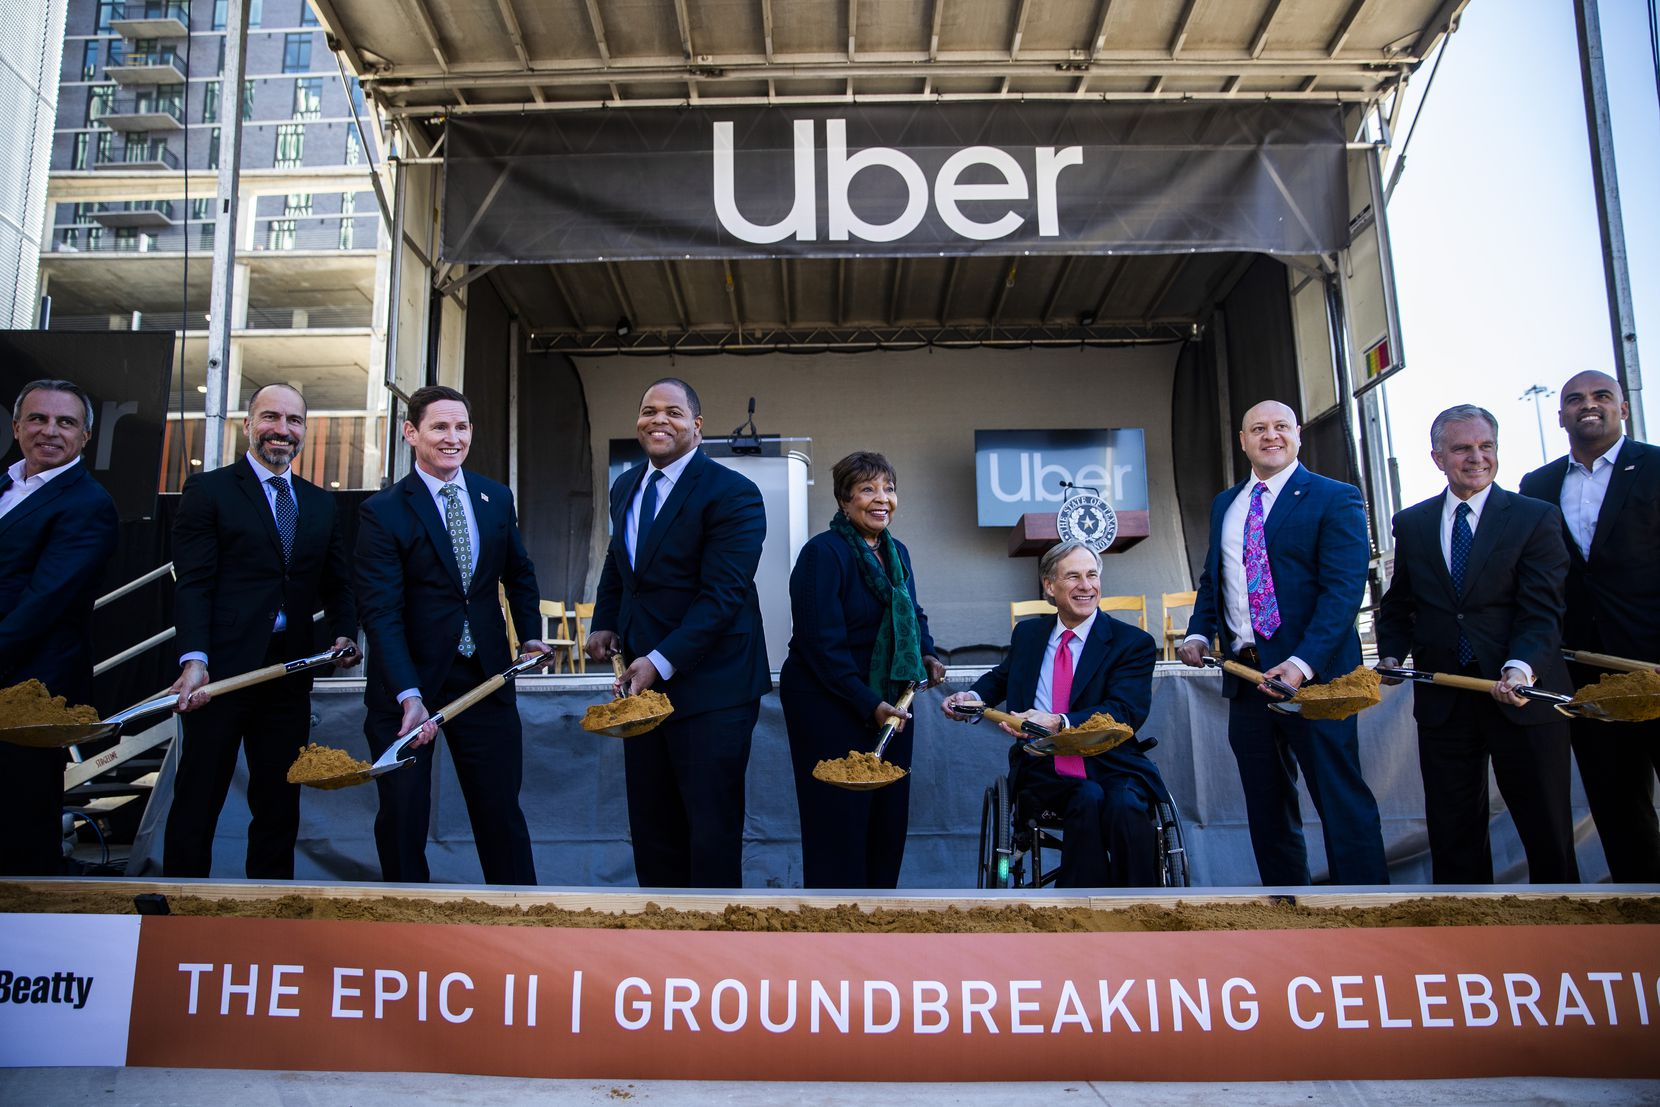 Uber CEO Dara Khosrowshahi (second from left), Dallas Mayor Eric Johnson (fourth from left), Governor Greg Abbott (fourth from right) and other city and state officials pose for a photo during a ground breaking ceremony for a new Uber Deep Ellum office on Friday, November 1, 2019 in Dallas. (Ashley Landis/The Dallas Morning News)